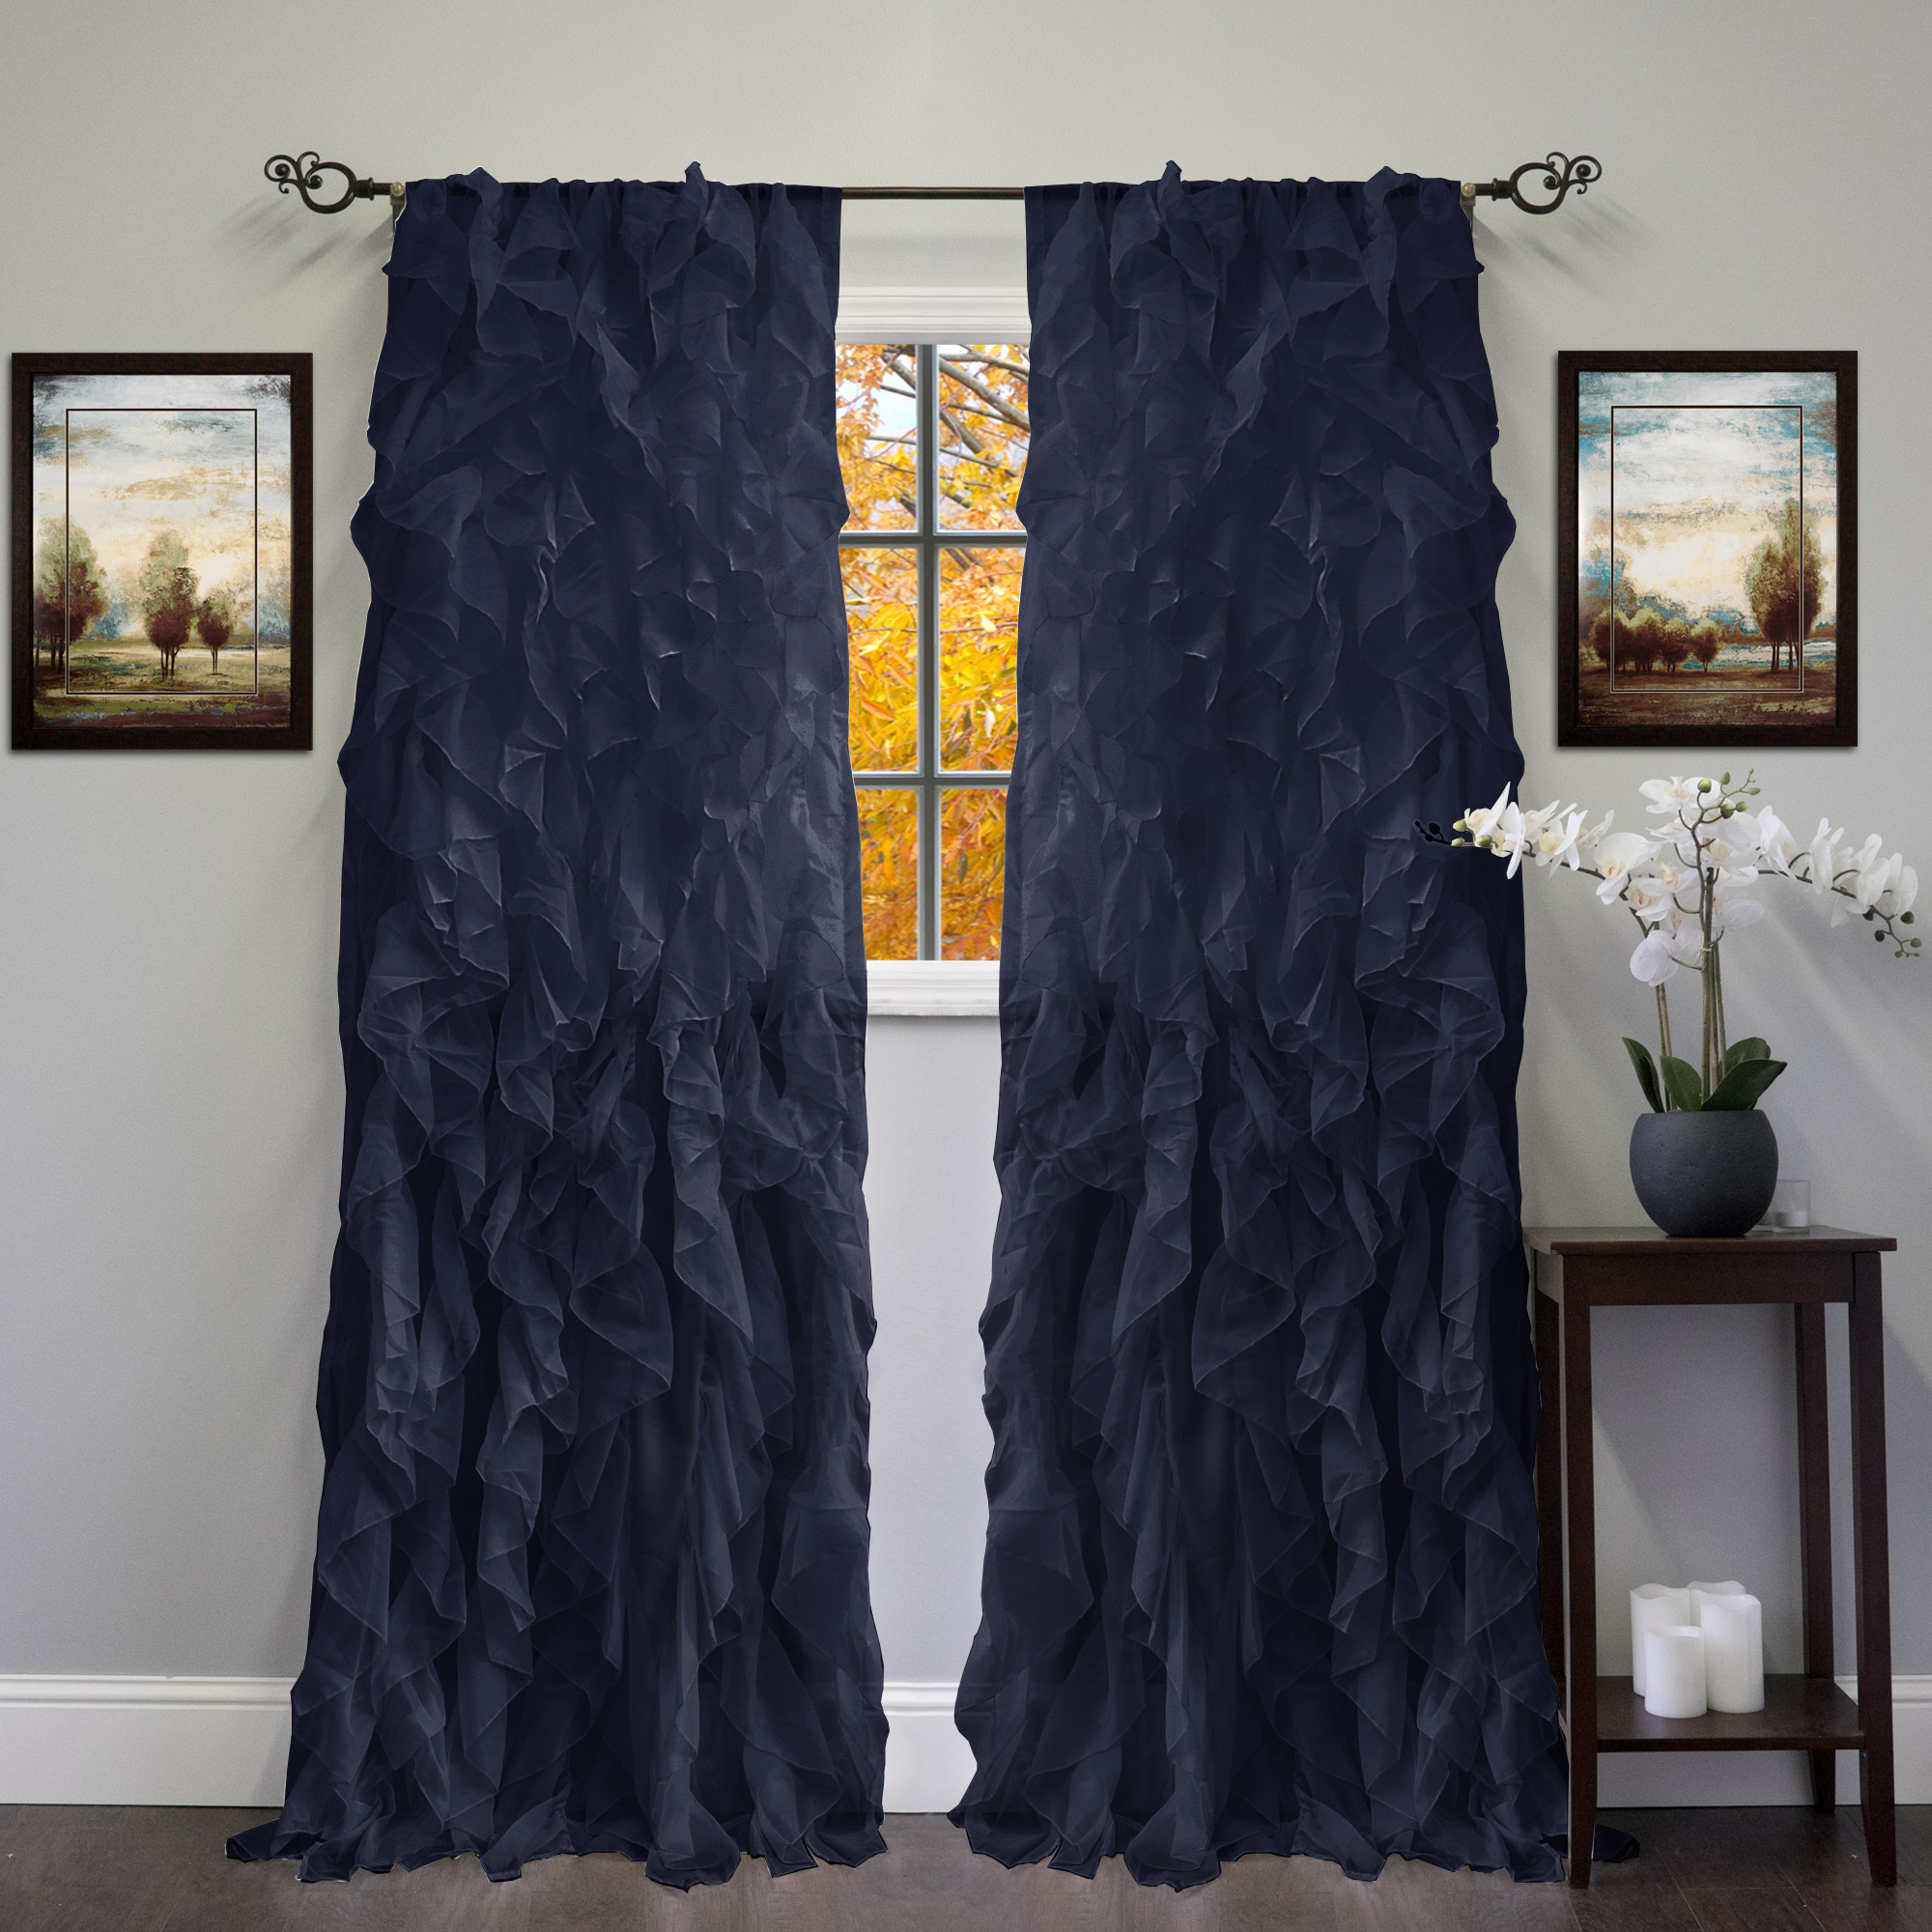 """Widely Used Sheer Voile Ruffled Tier Window Curtain Panels Regarding Chic Sheer Voile Vertical Ruffled Tier Window Curtain Single Panel 50"""" X  108"""" (View 20 of 20)"""